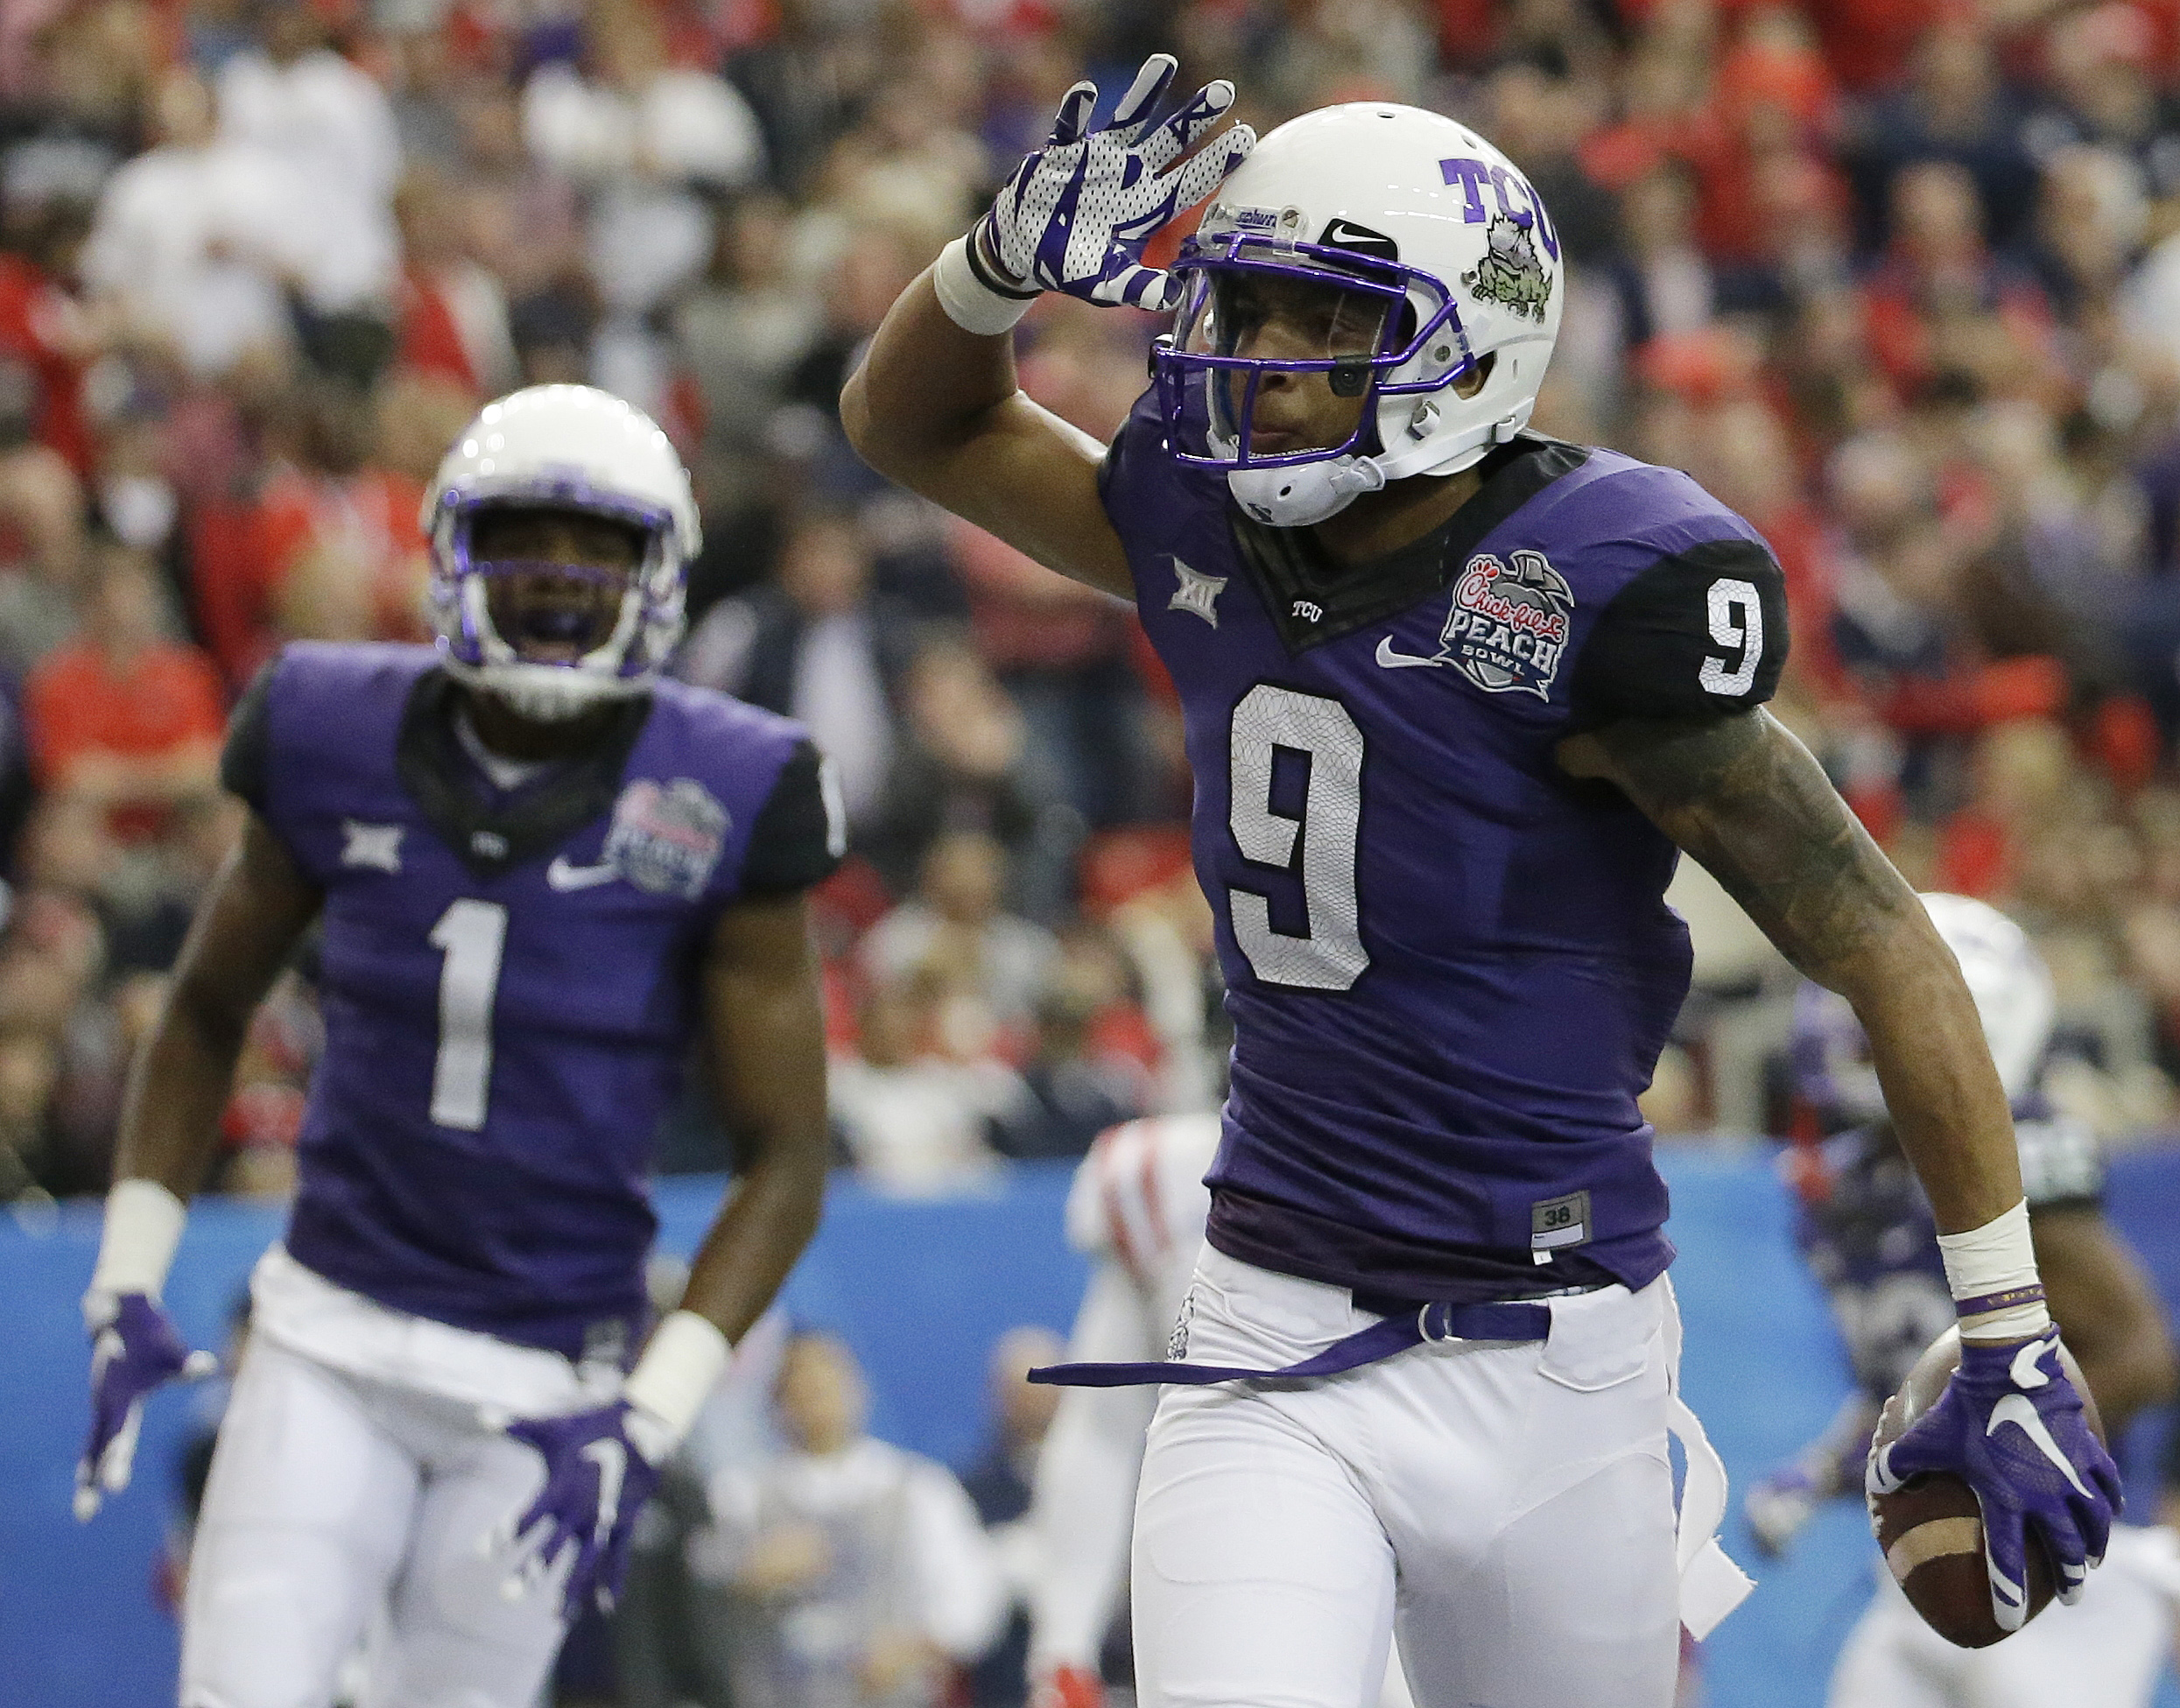 TCU wide receiver Josh Doctson (9) celebrates his touchdown against Mississippi during the first half of the Peach Bowl NCAA football game, Wednesday, Dec. 31, 2014, in Atlanta. (AP Photo/David Goldman)